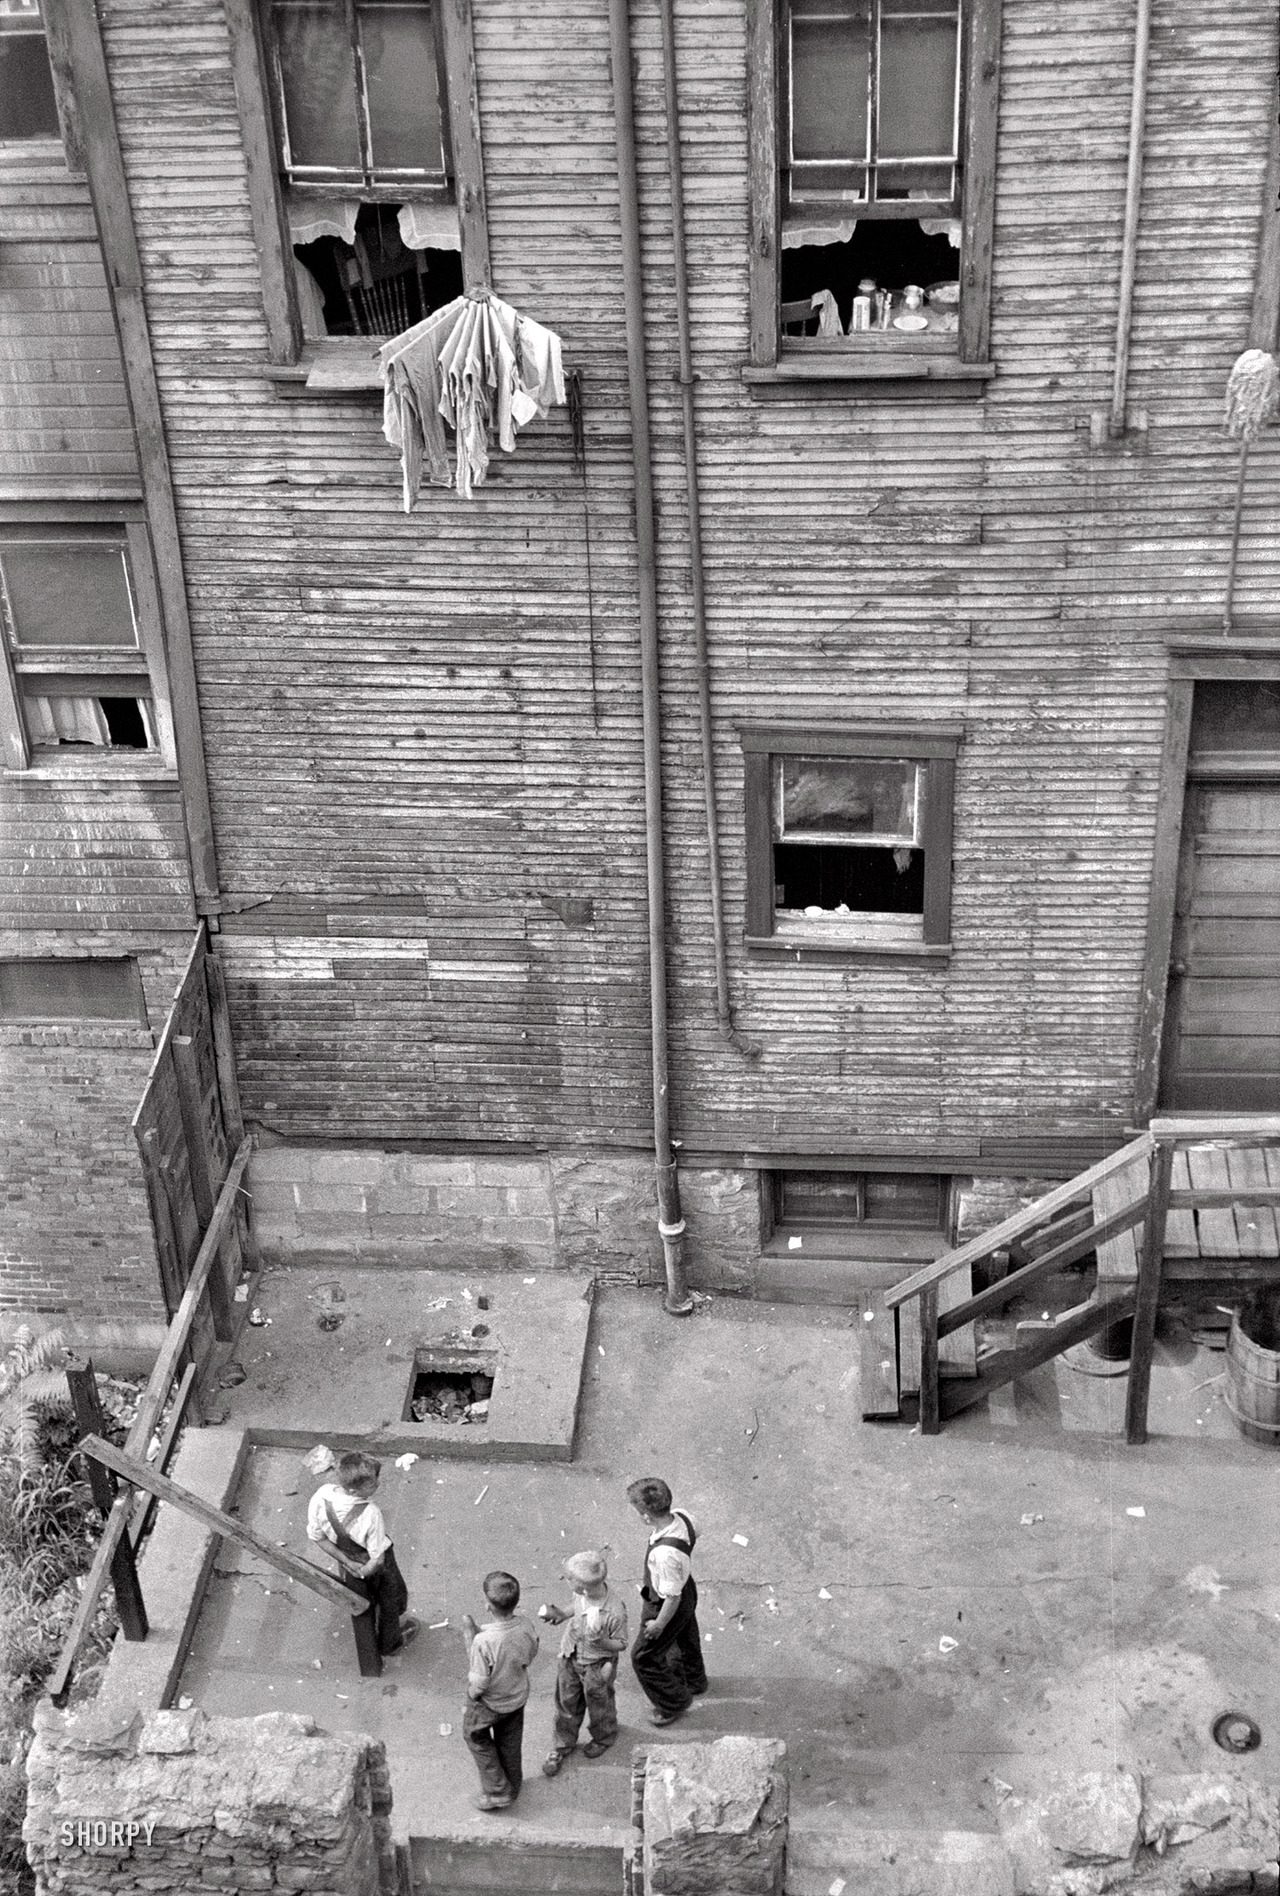 Slums in Pittsburgh, Pennsylvania, 1938. By Arthur Rothstein